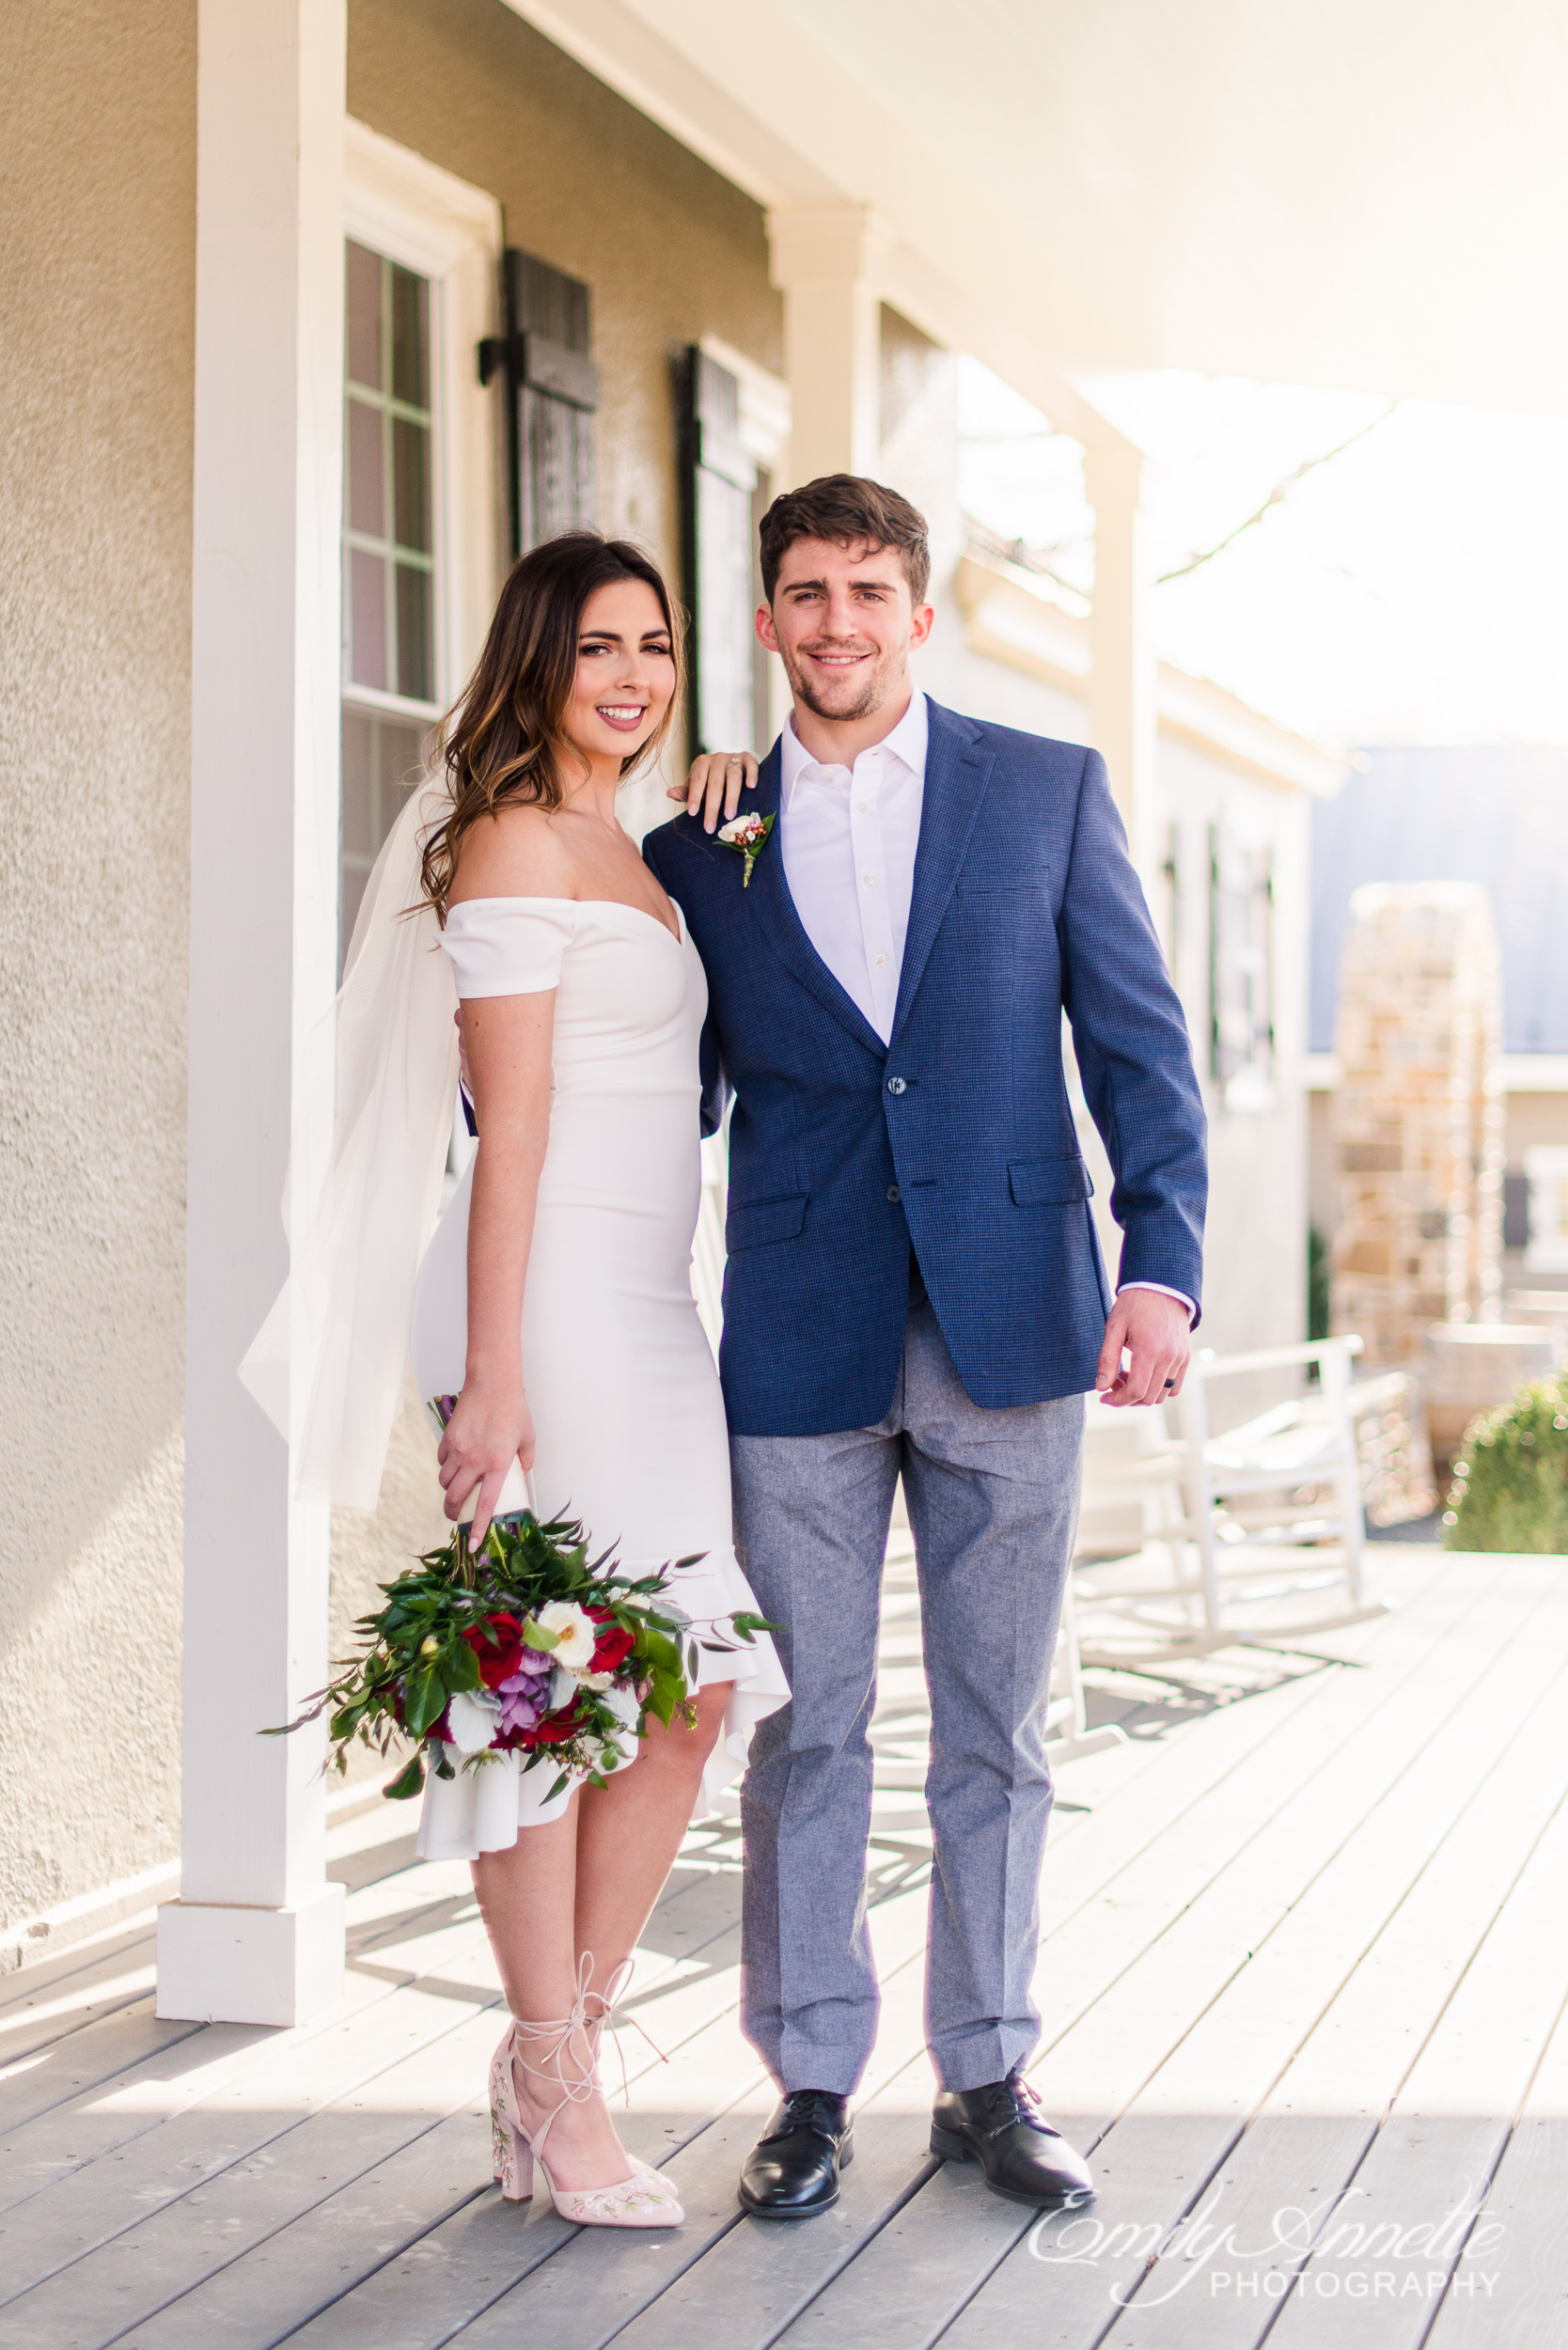 A bride and groom pose for a traditional portrait on their wedding day at Fleetwood Farm Winery in Leesburg, Virginia